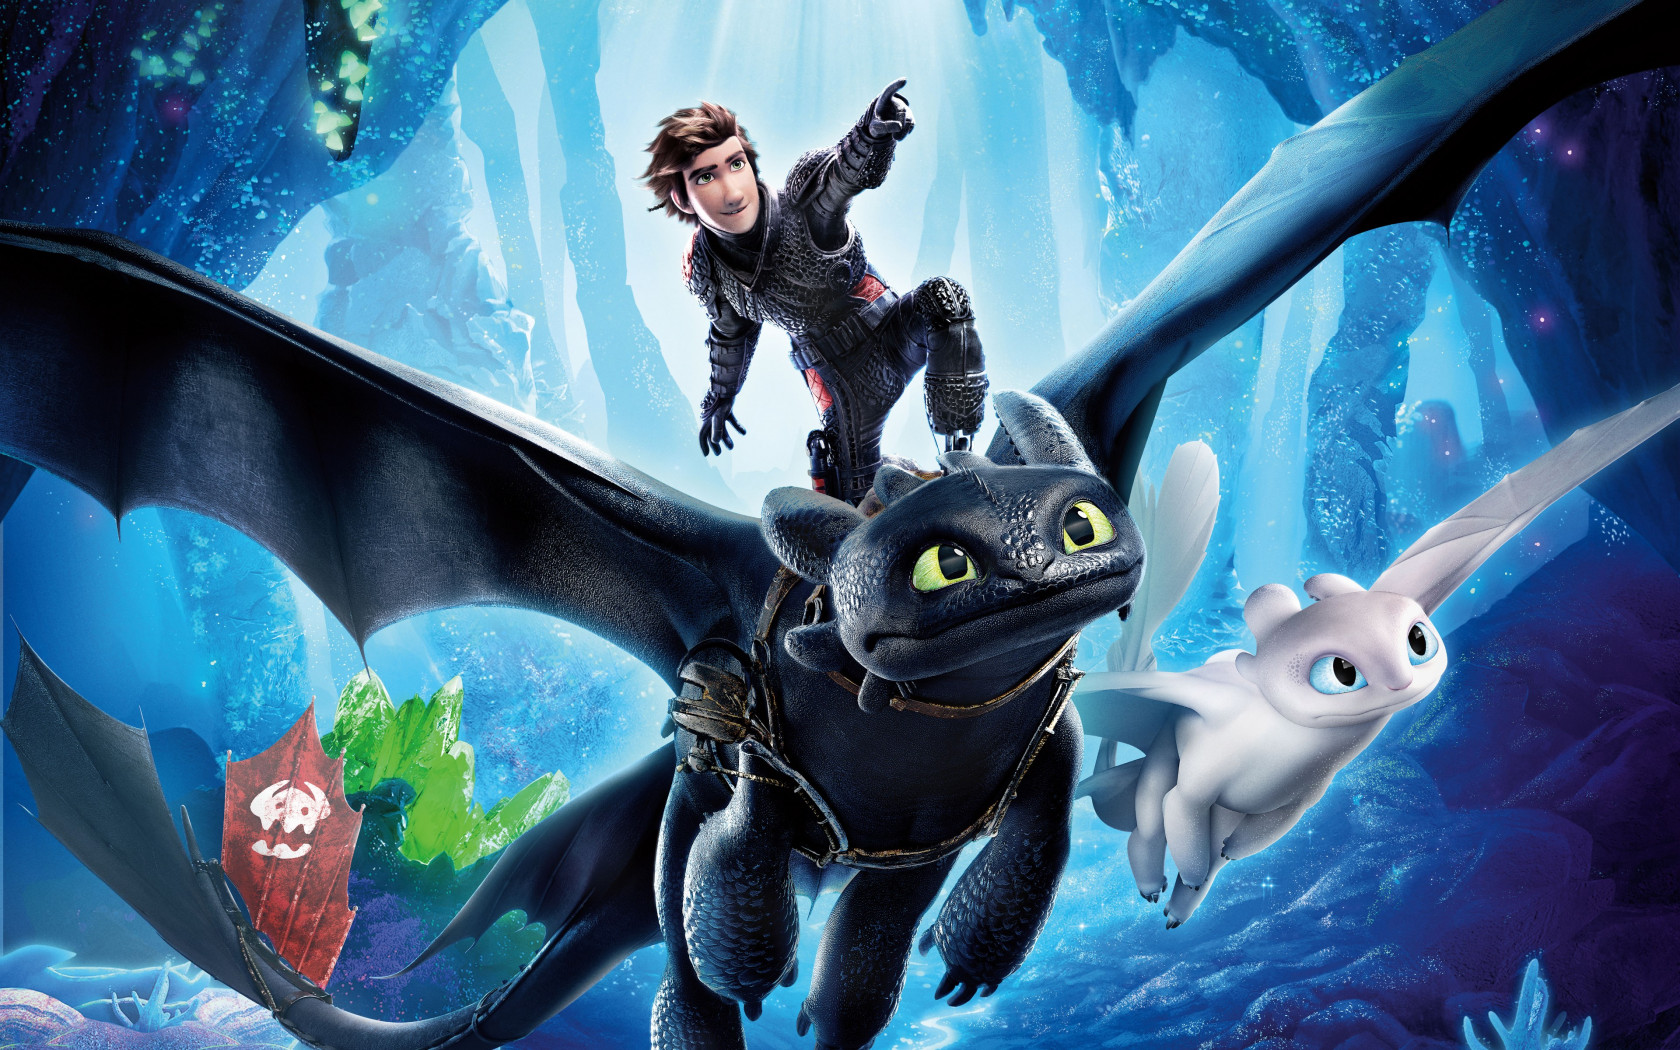 How to Train Your Dragon 2019 wallpaper 1680x1050